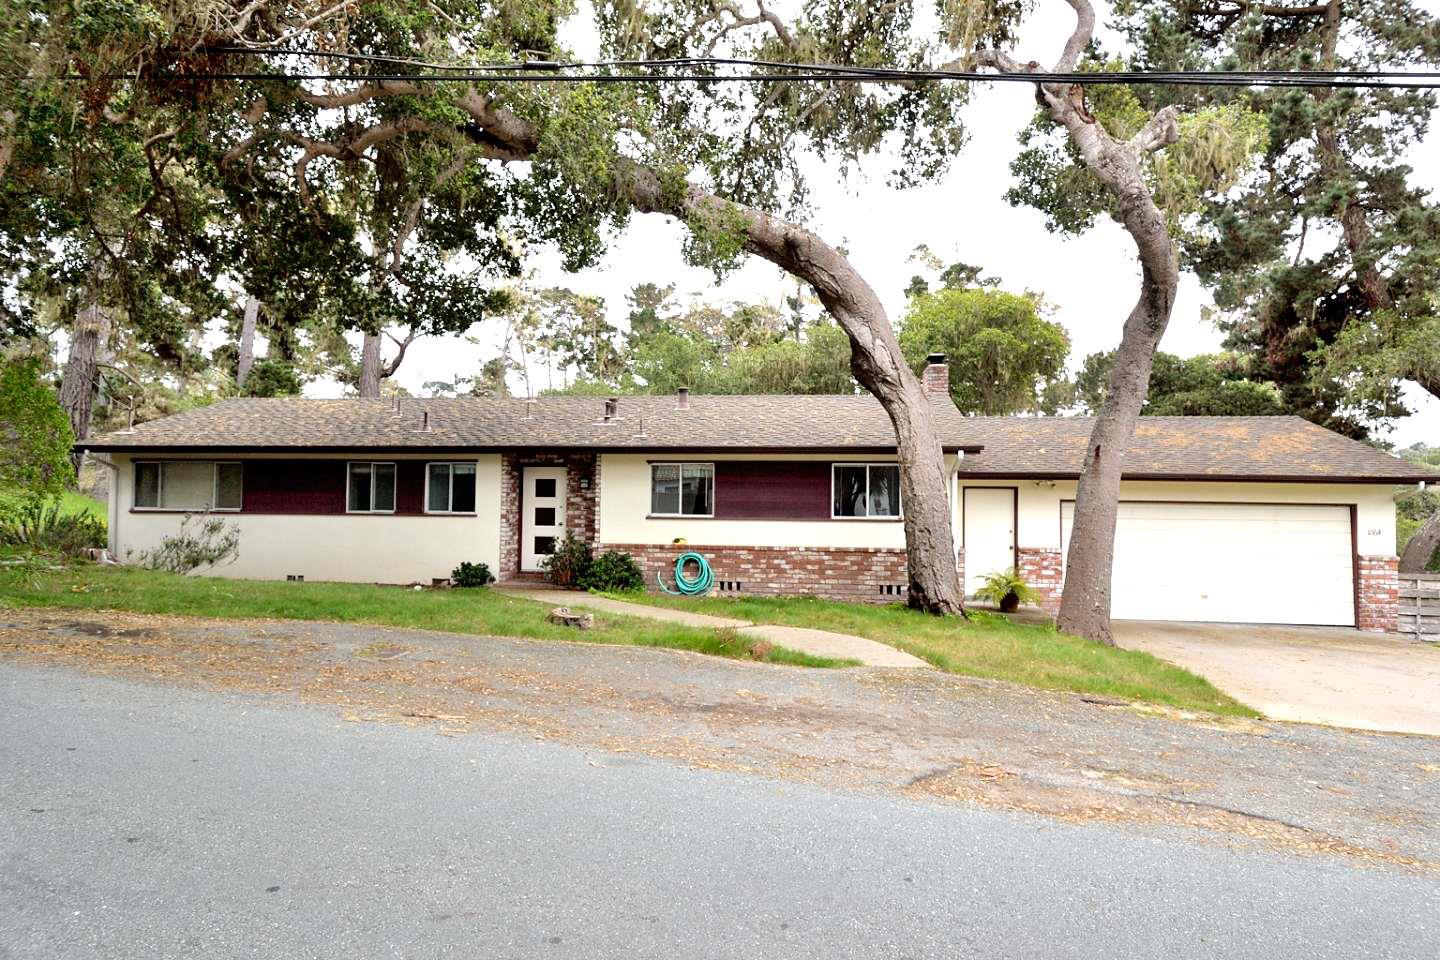 1064 Mission Rd, Pebble Beach, CA 93953